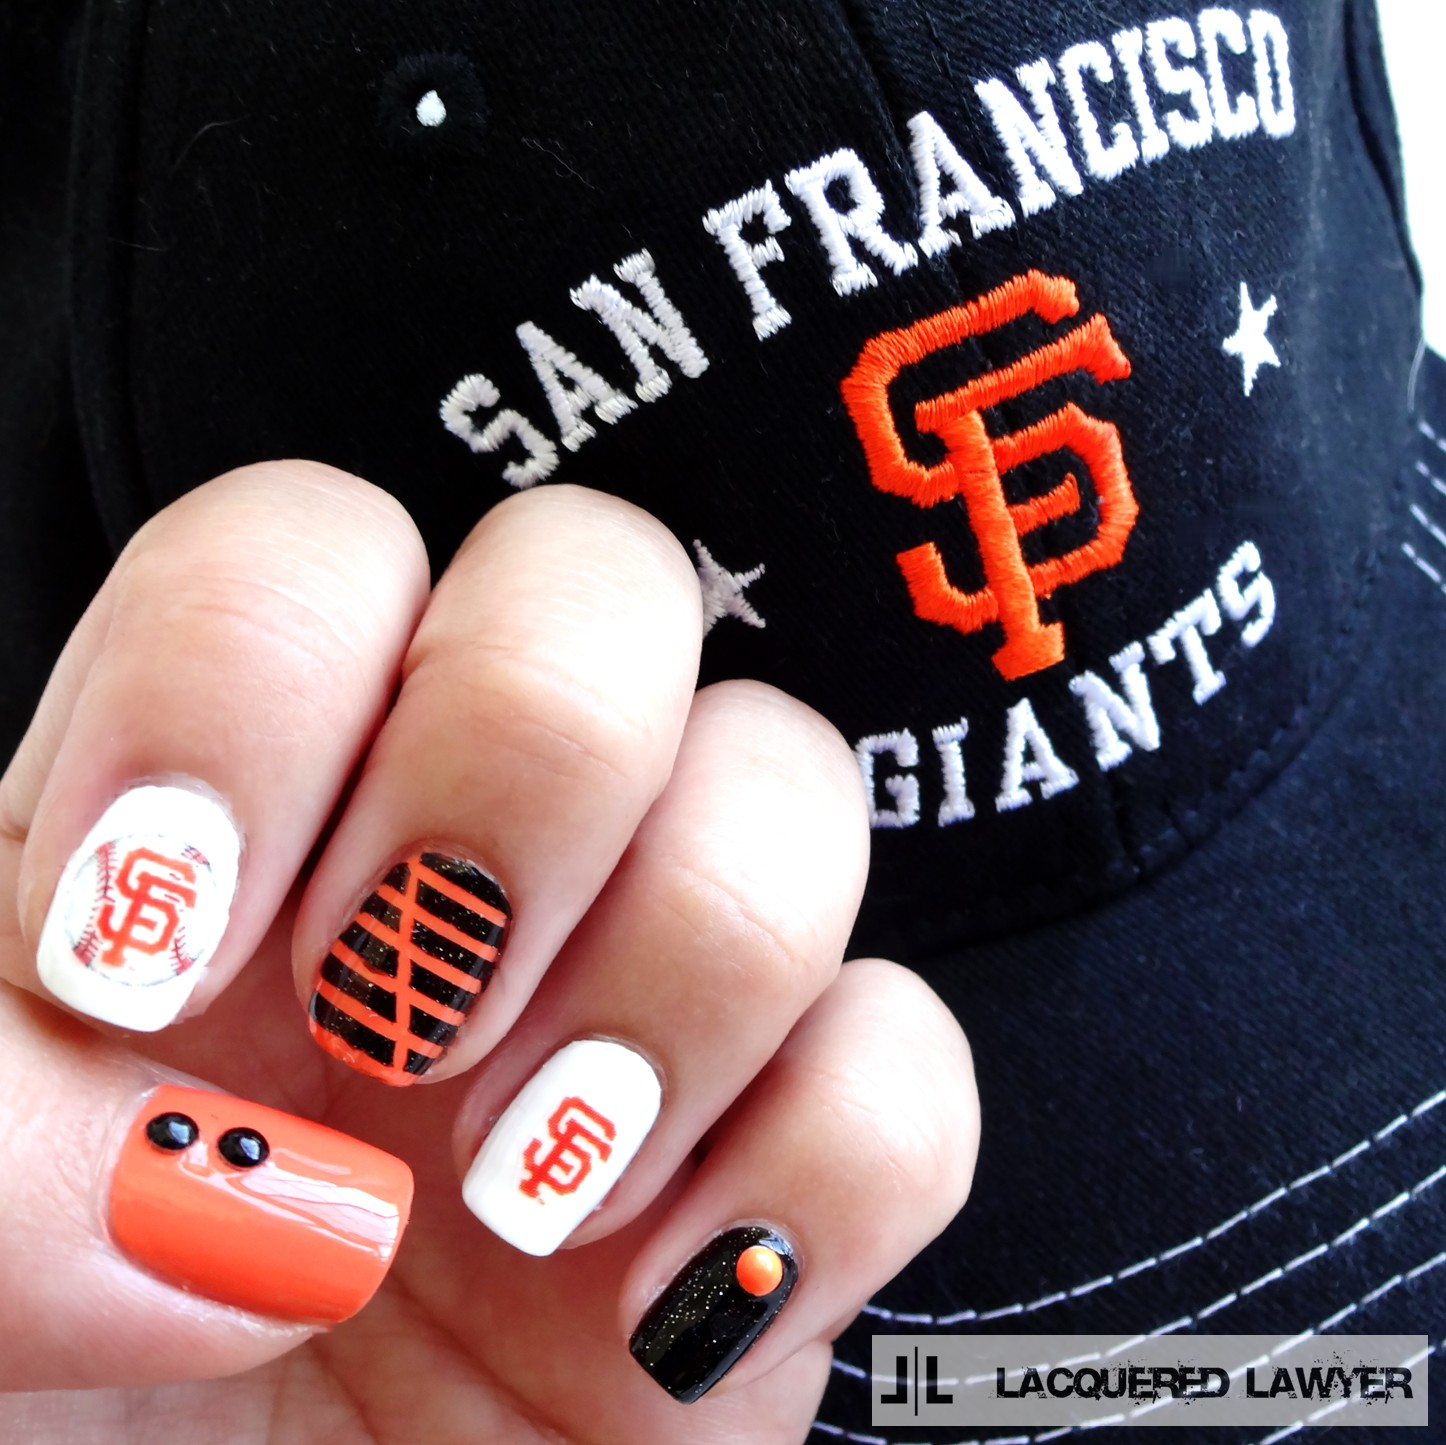 Lacquered Lawyer | Nail Art Blog: San Francisco Giants